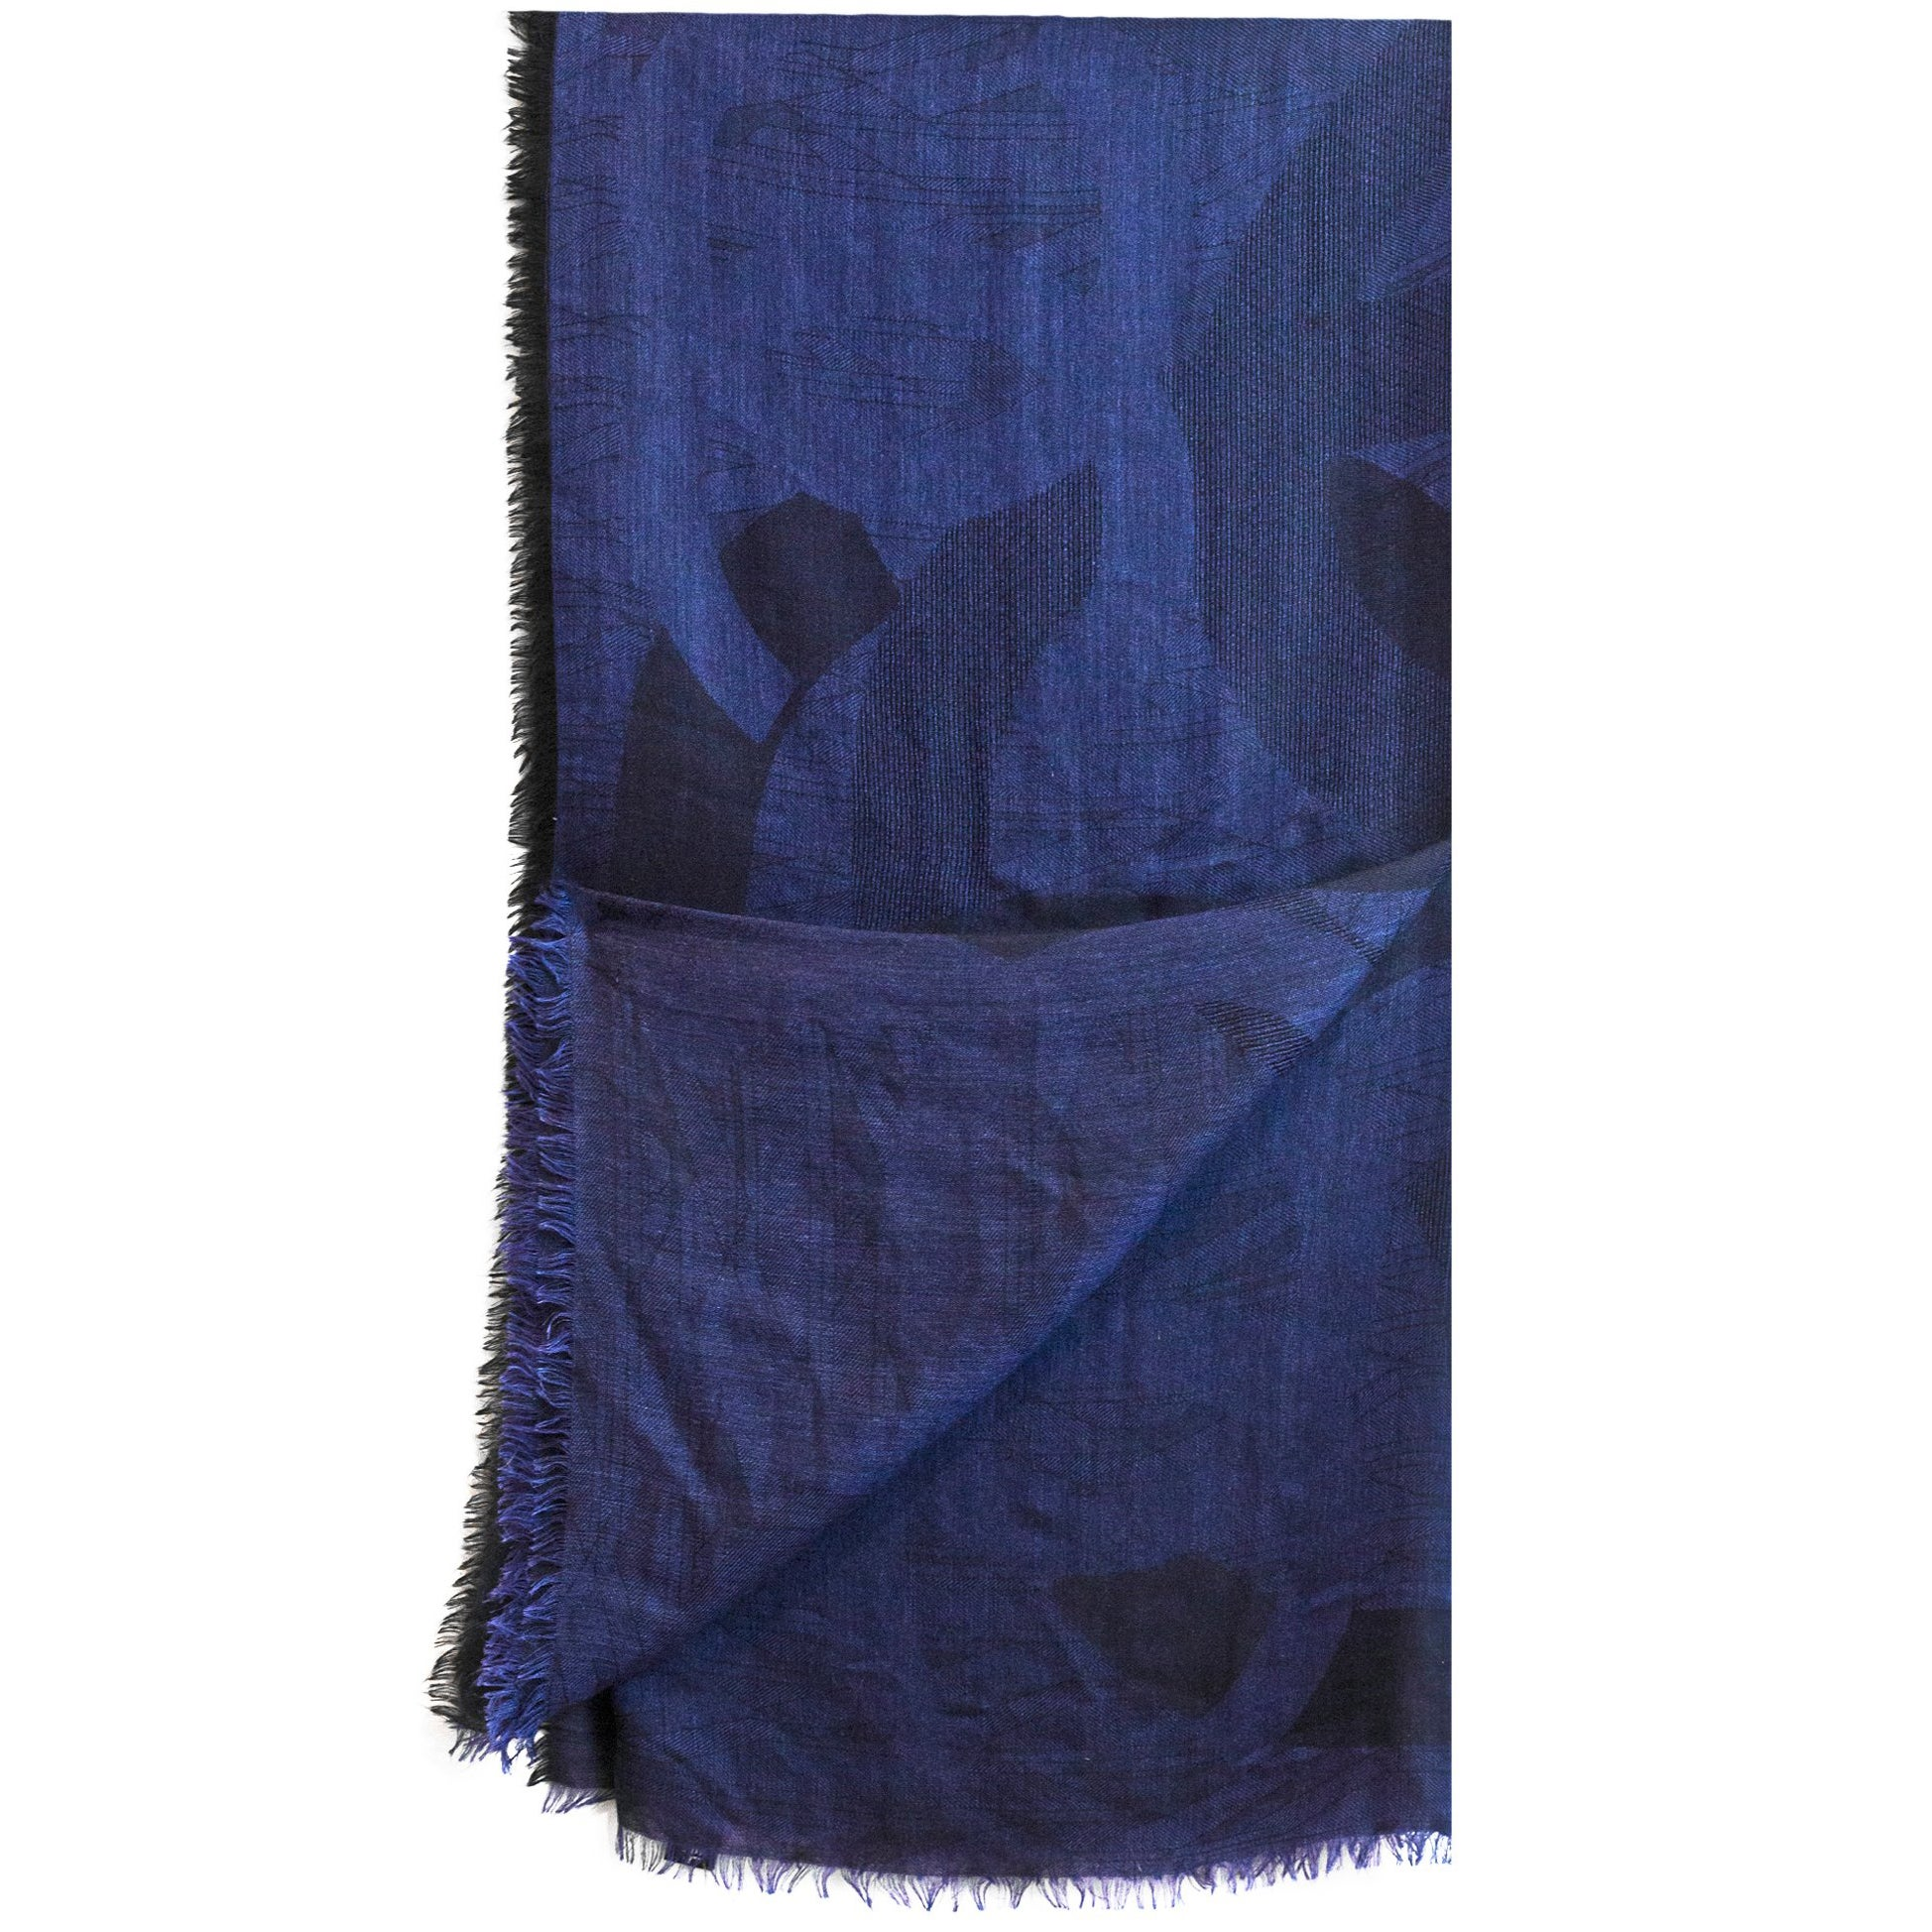 a4f93422dc91c Chanel Navy and Black Cashmere Blend CC Logo Scarf For Sale at 1stdibs